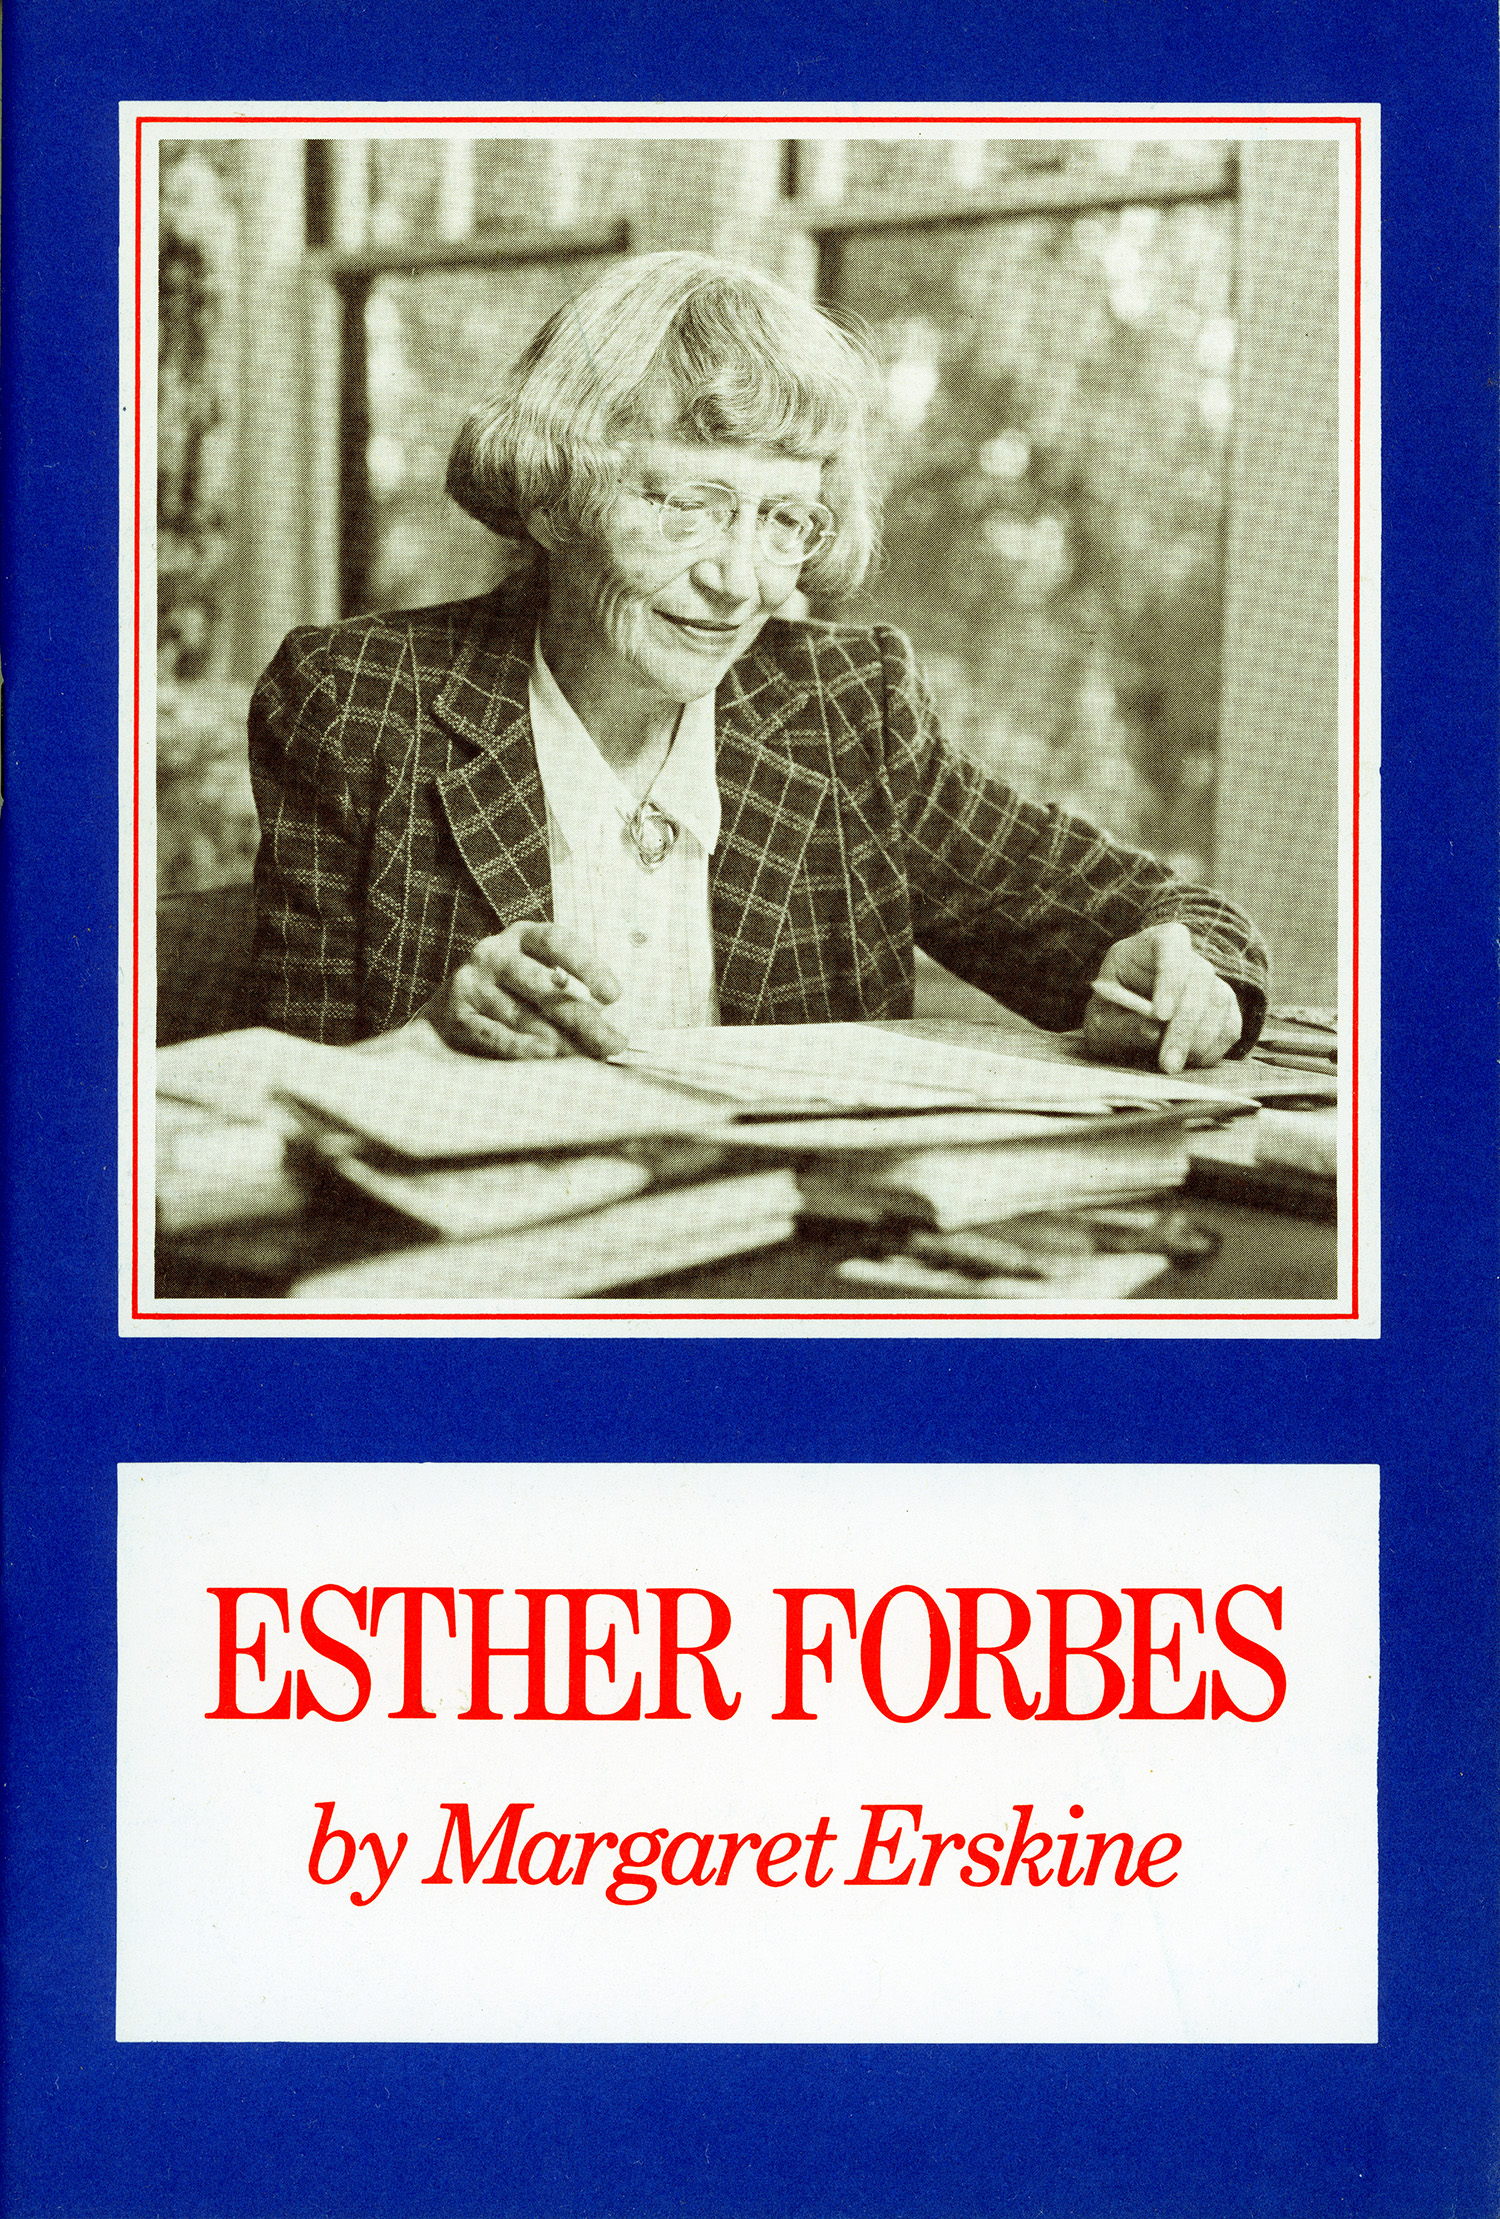 Esther Forbes by Margaret Erskine